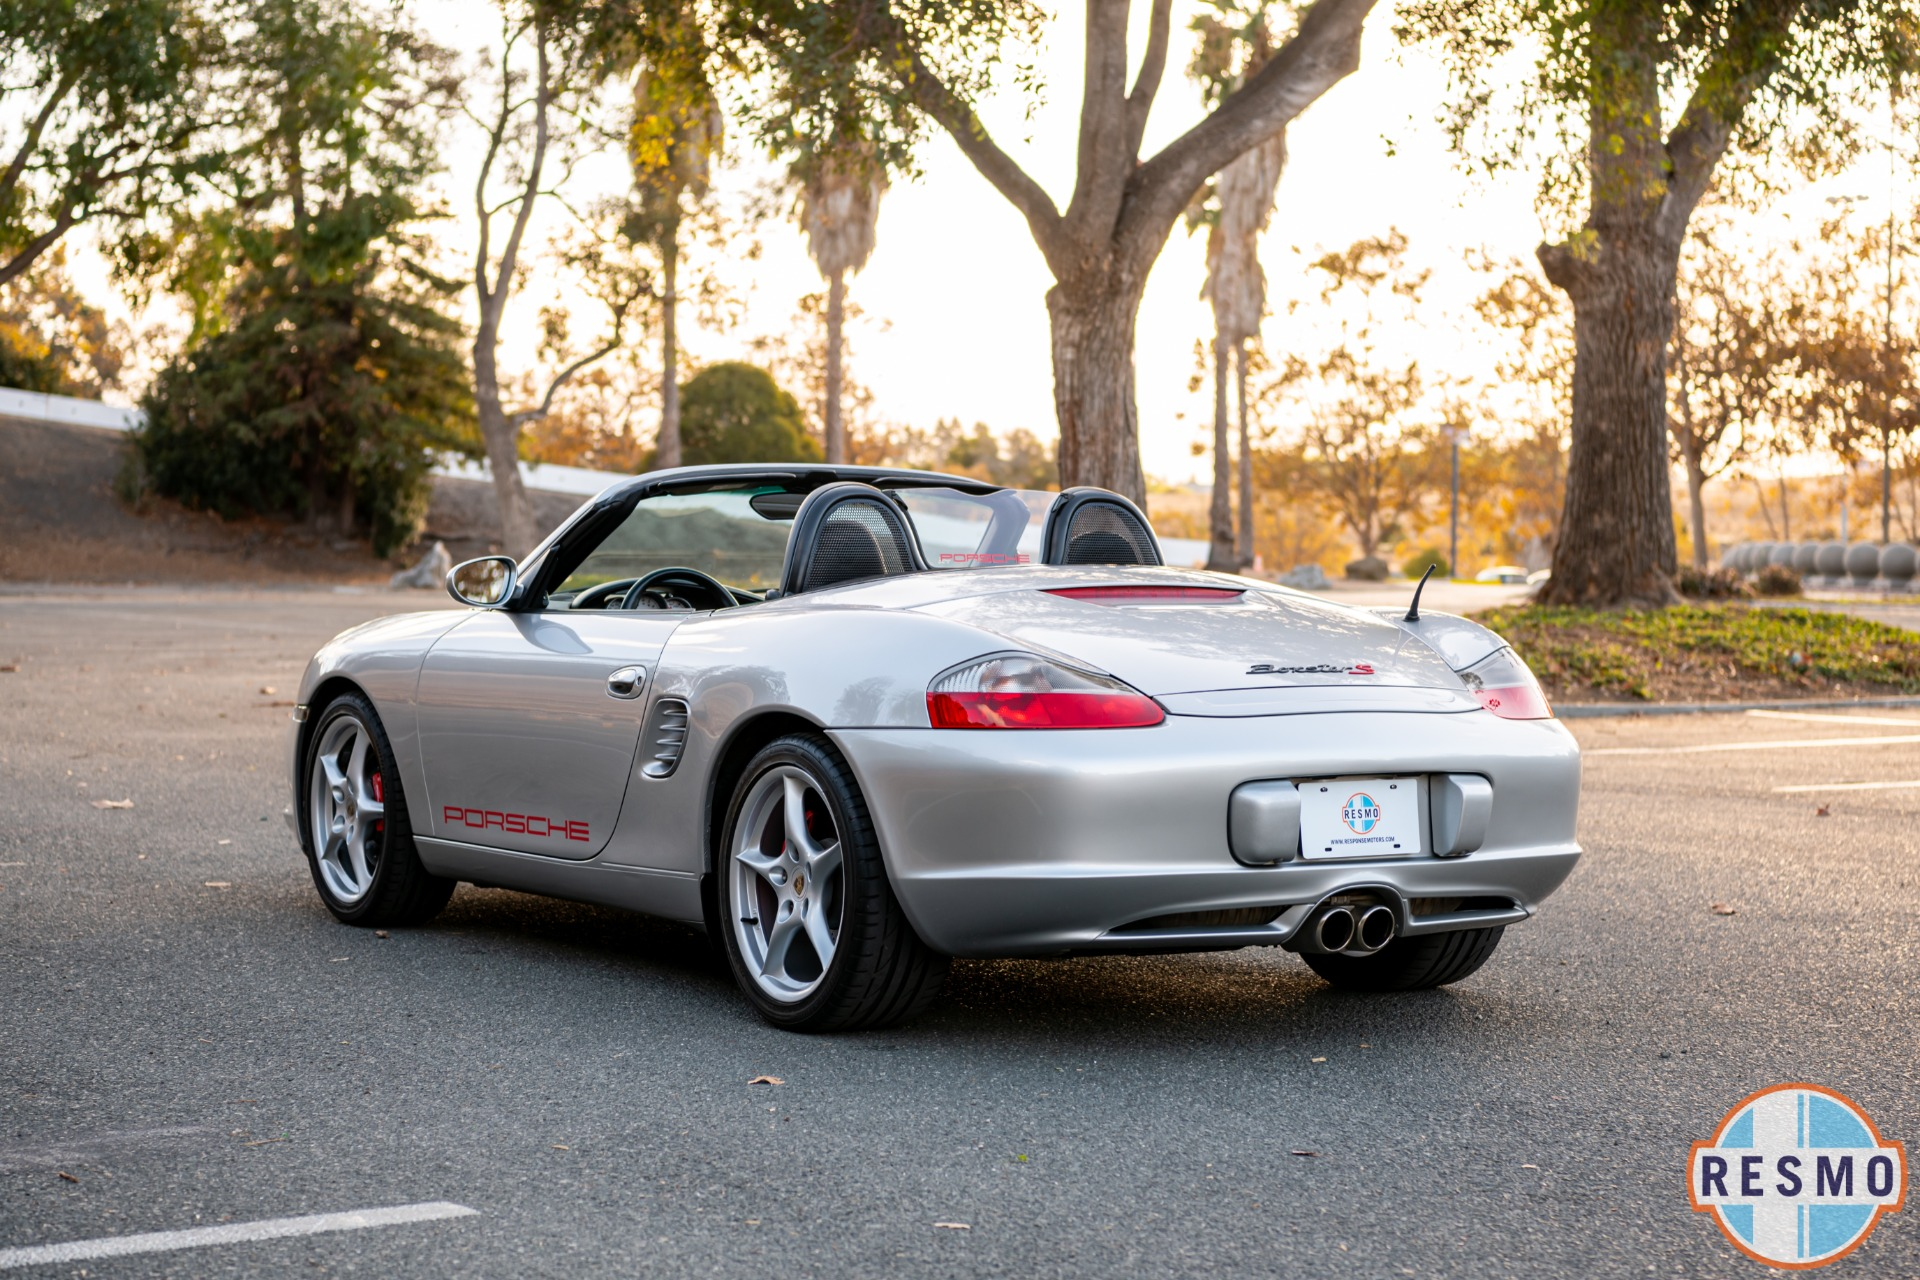 Used 2003 Porsche Boxster S Used 2003 Porsche Boxster S for sale Sold at Response Motors in Mountain View CA 8